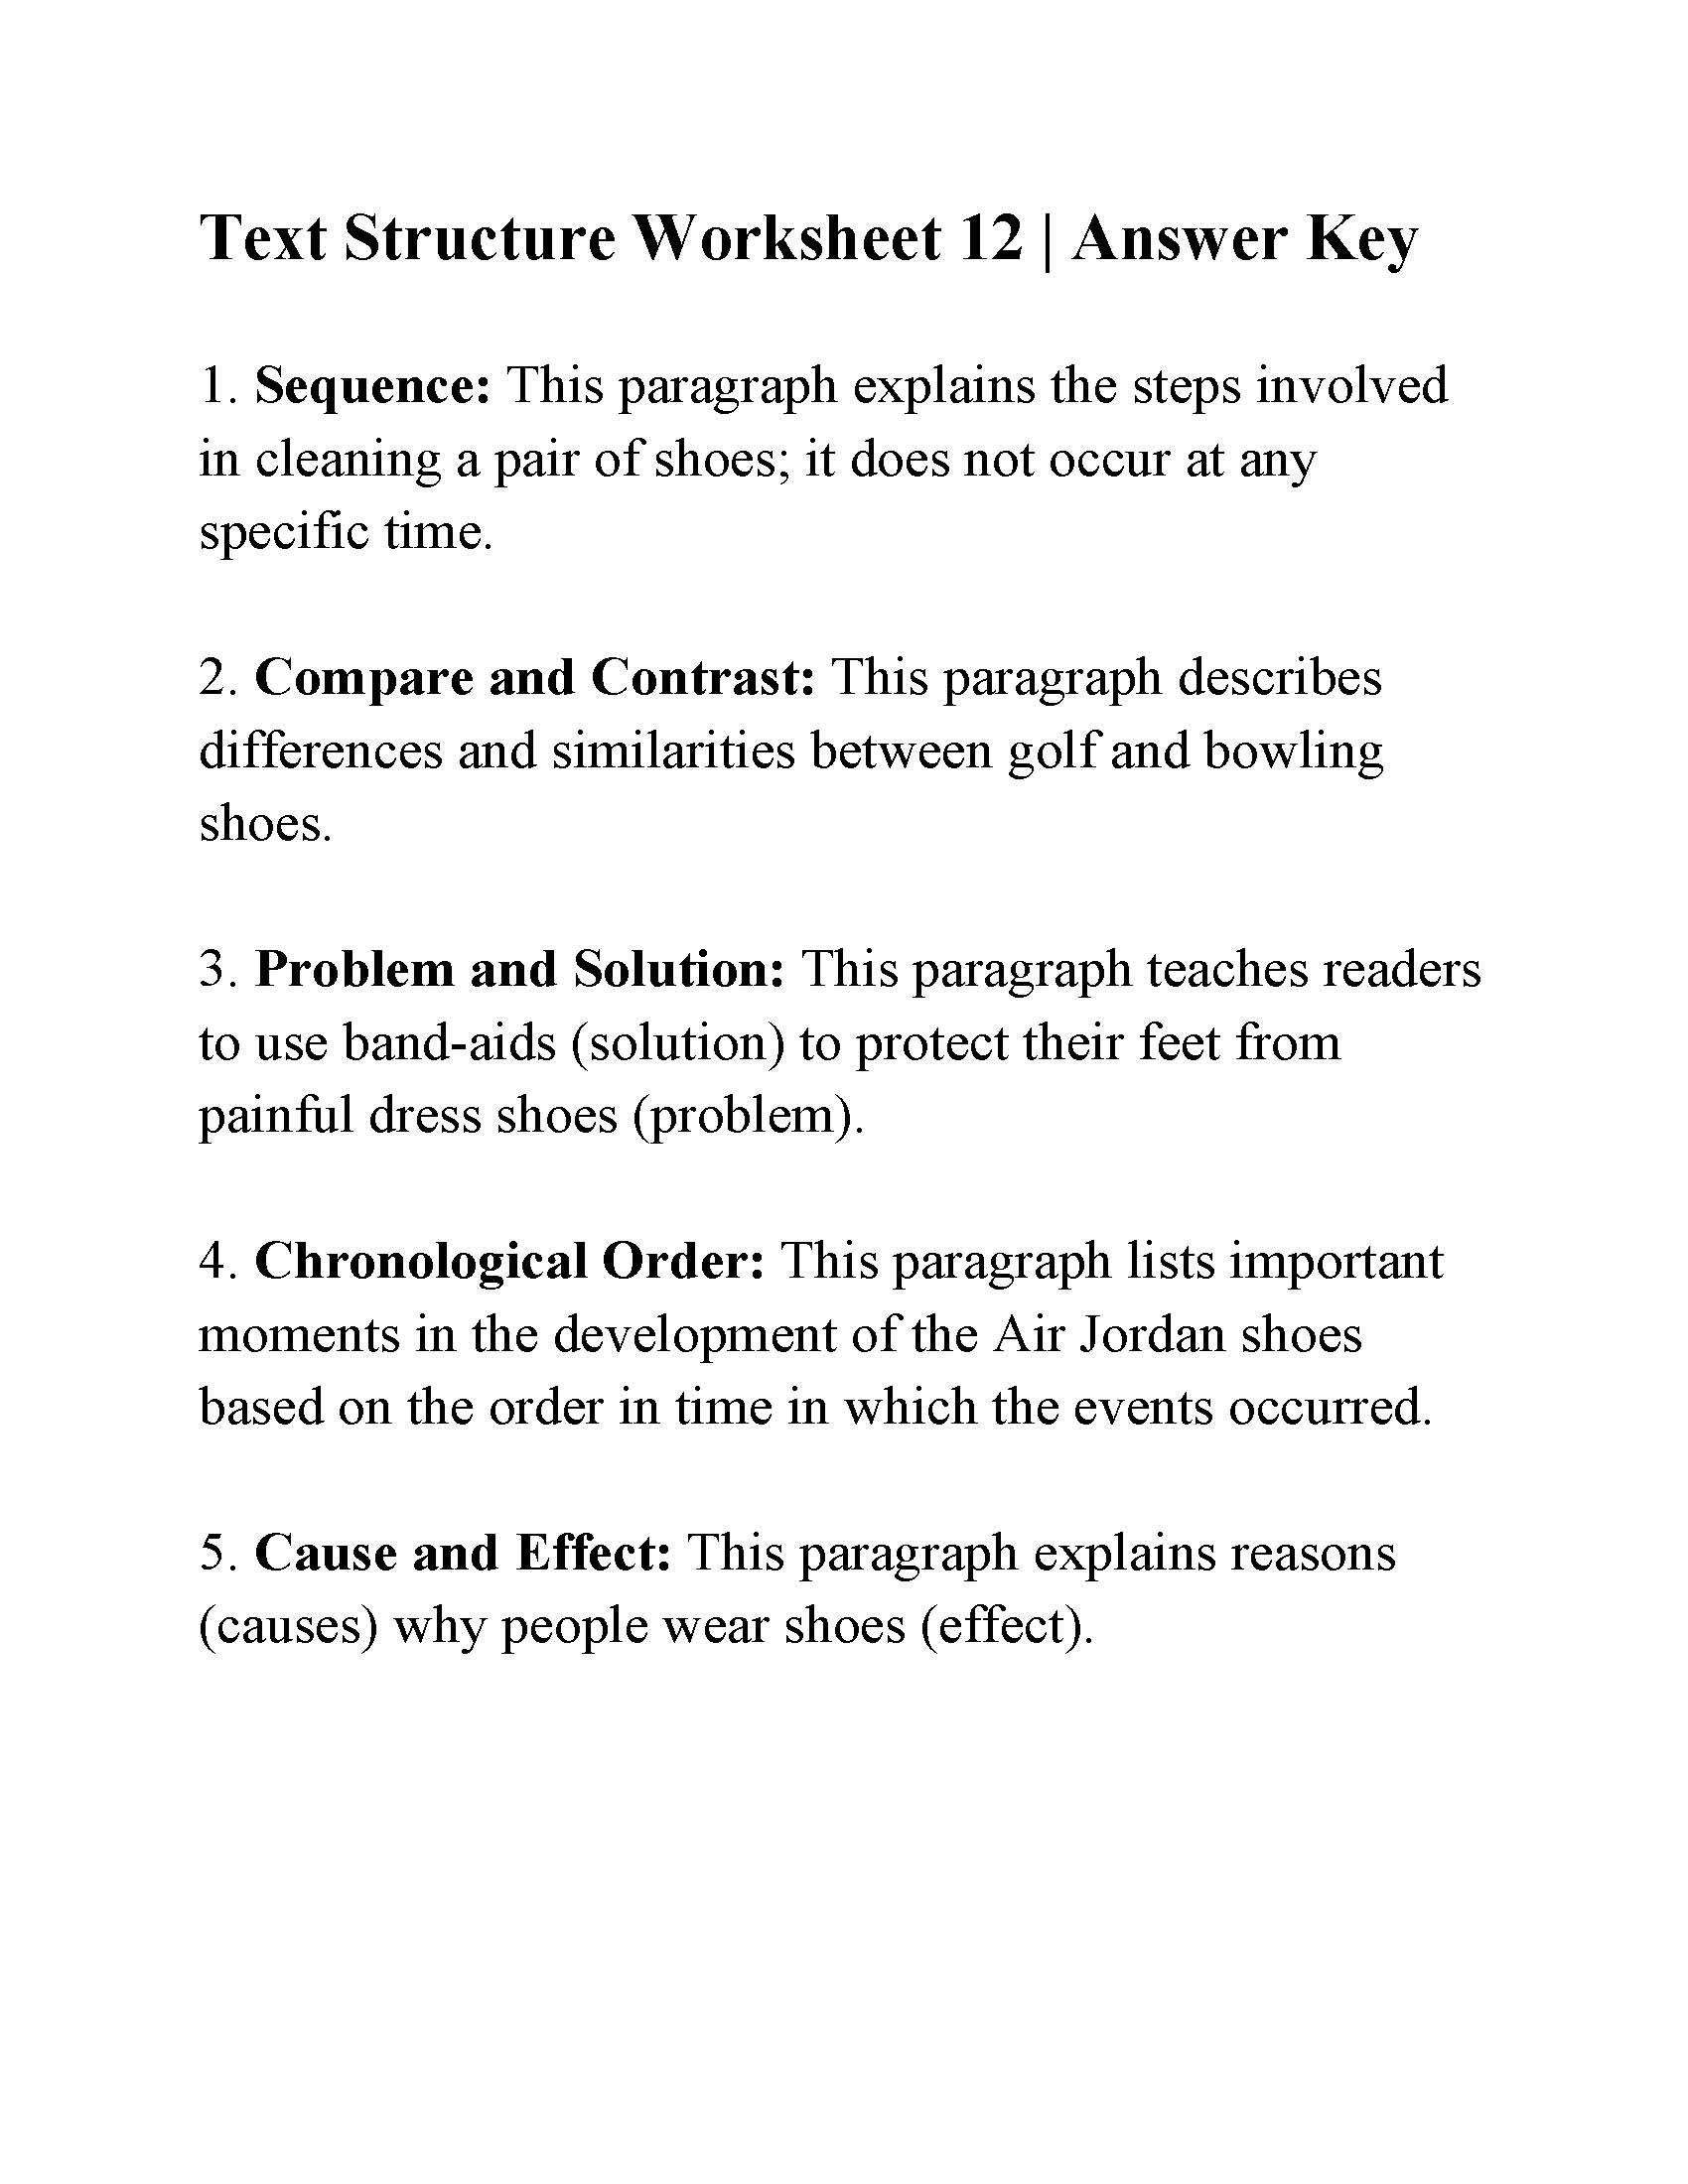 Text Structure Worksheets 3rd Grade Text Structure Worksheet Answers Worksheets Math Sum solver